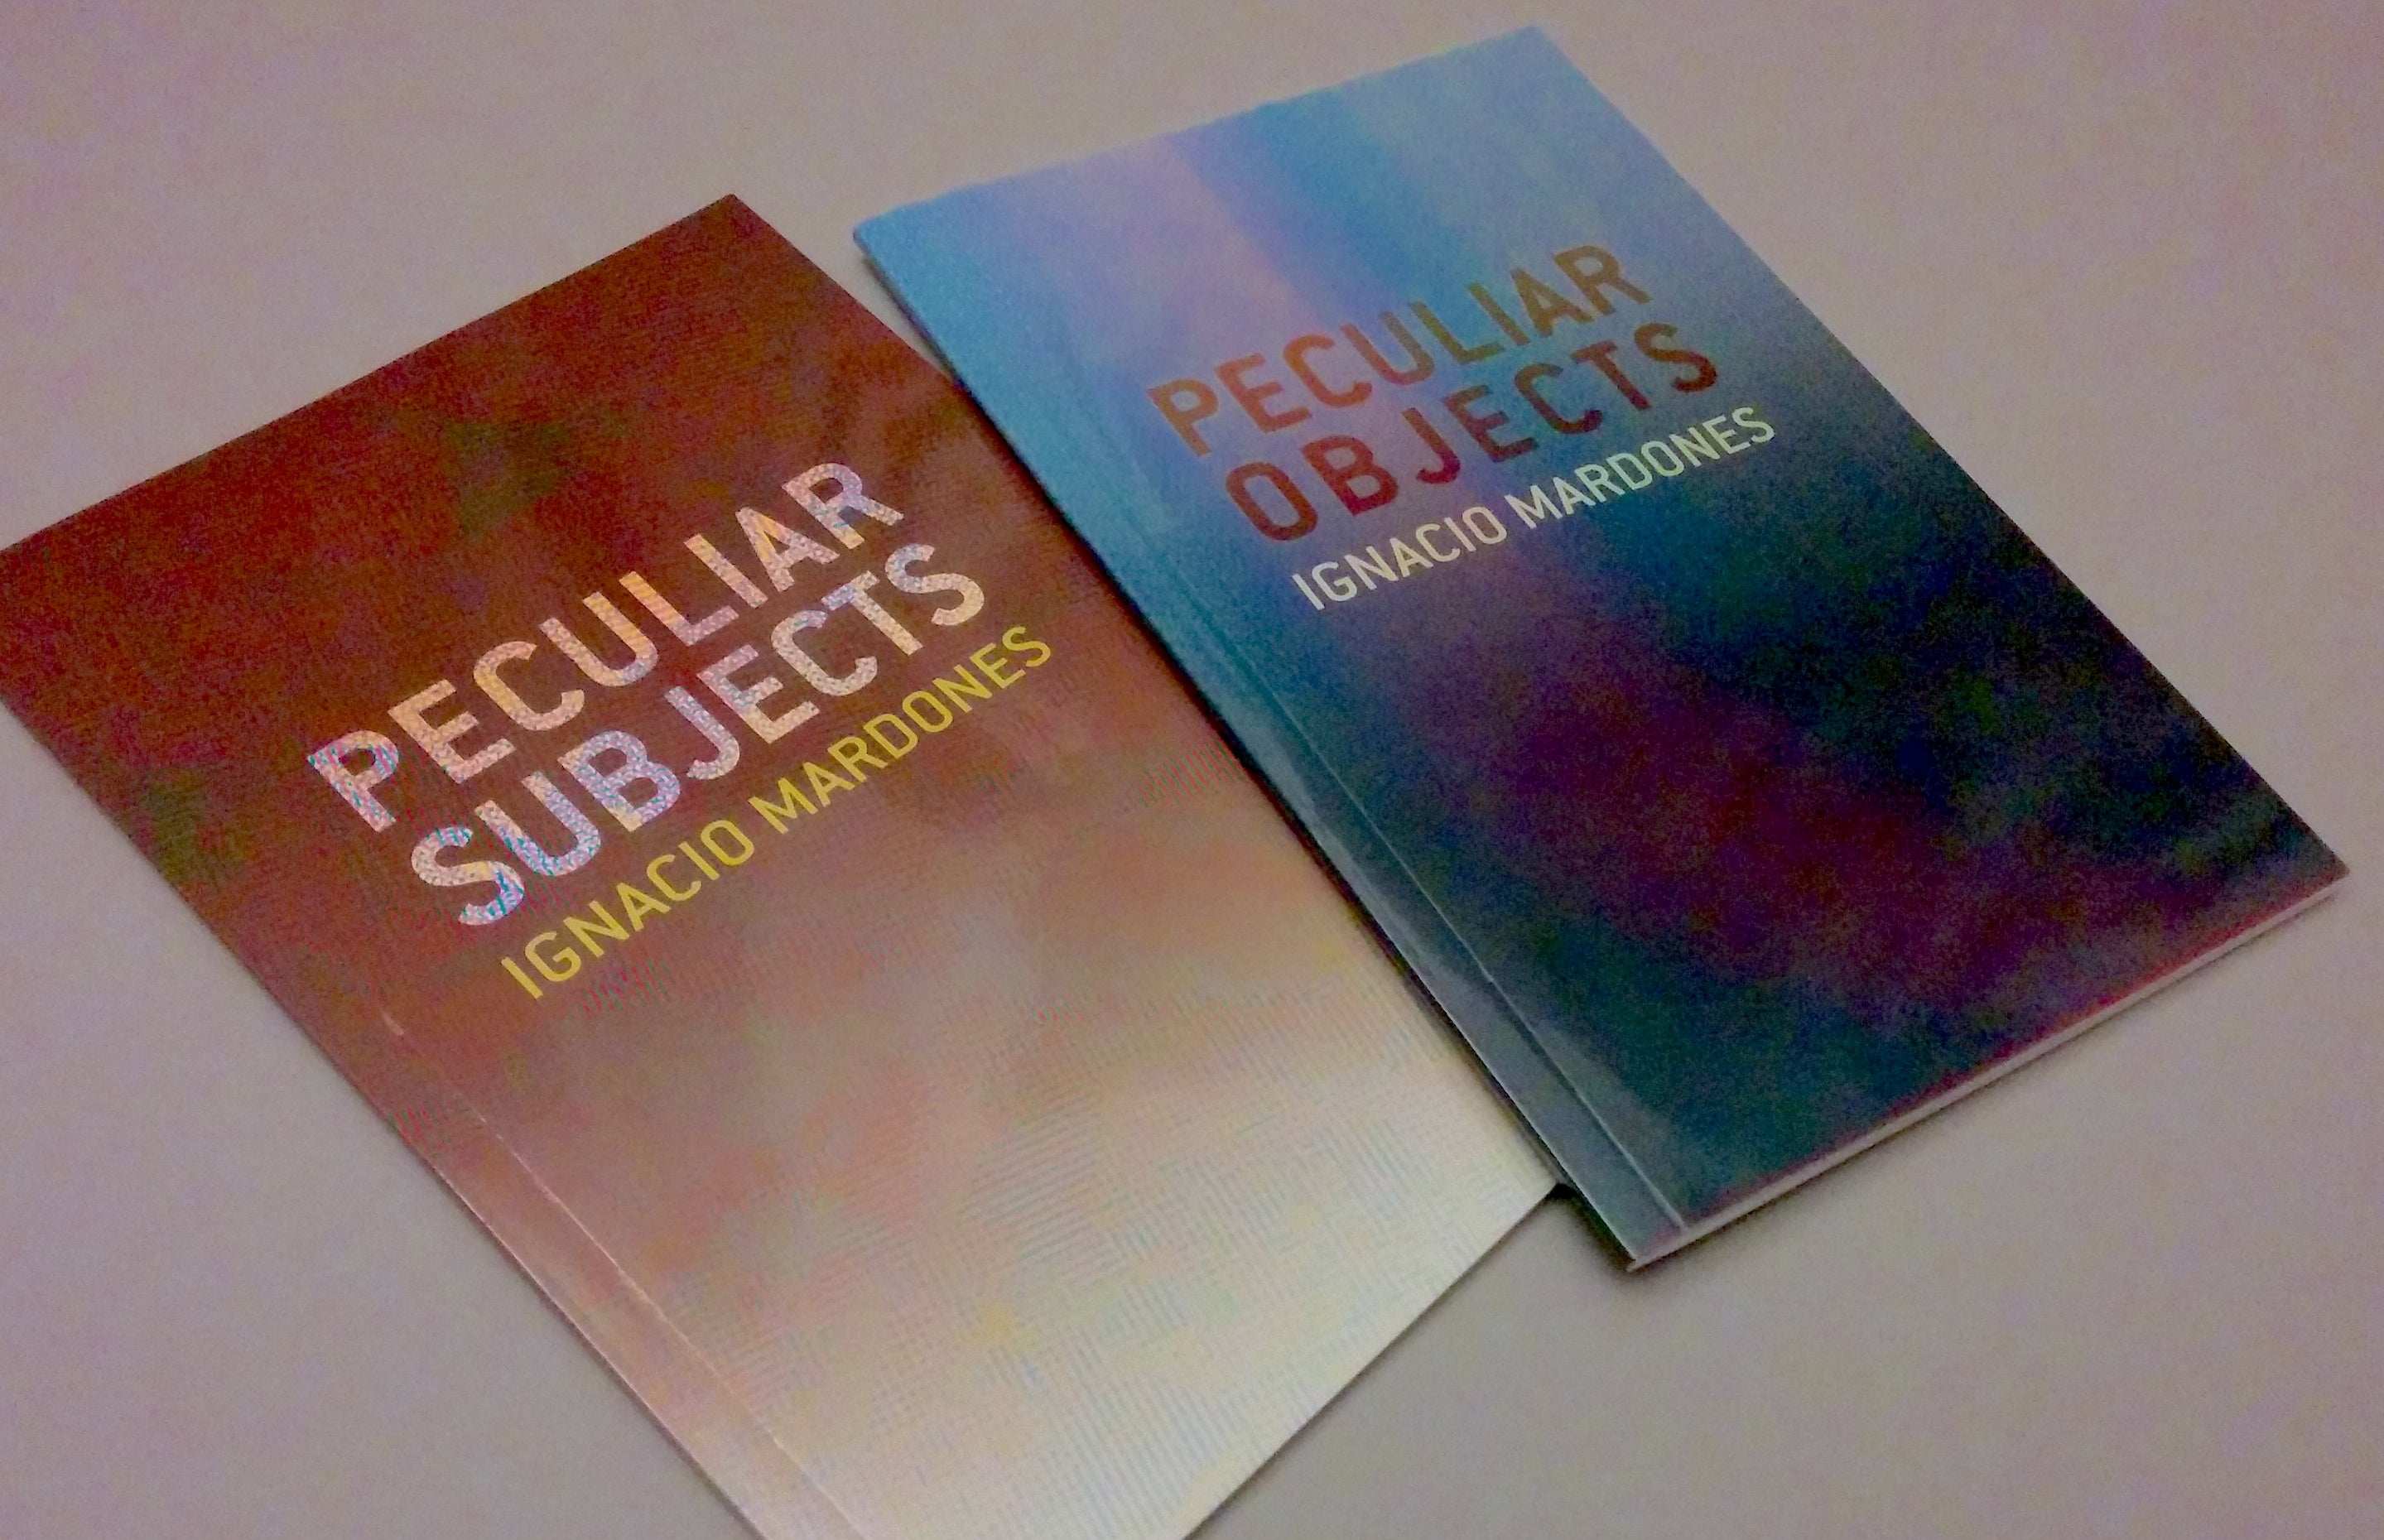 Peculiar Subjects / Peculiar Objects